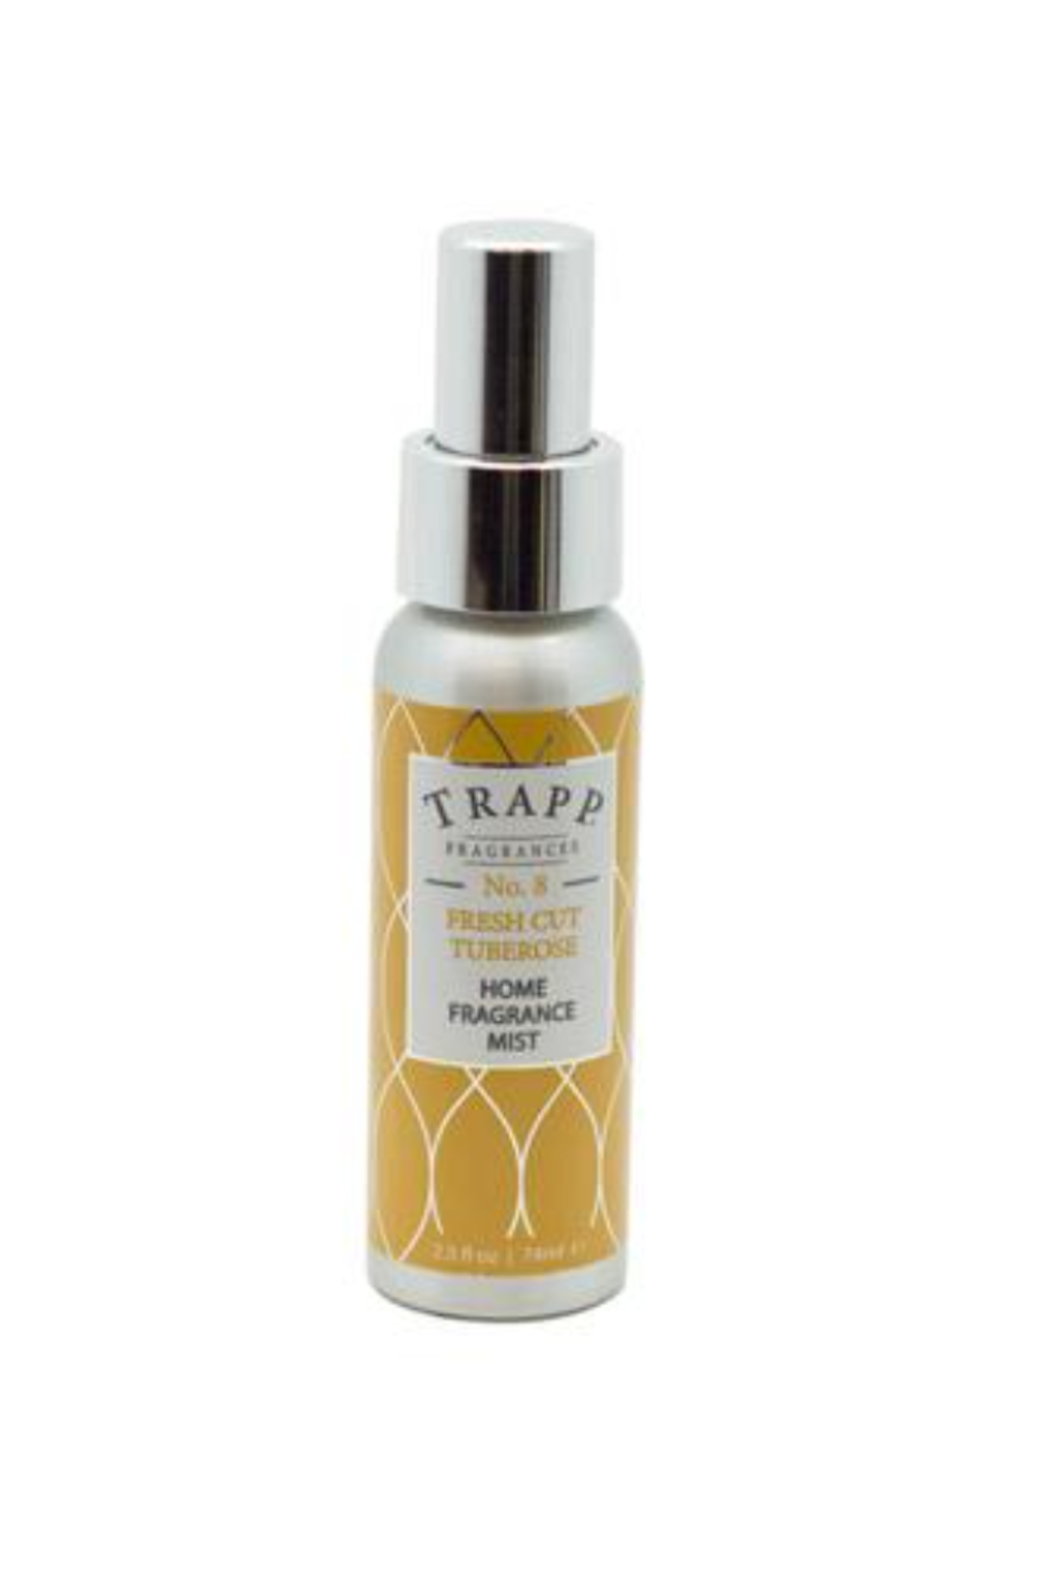 Trapp Candles Home Fragrance Mist - Main Image